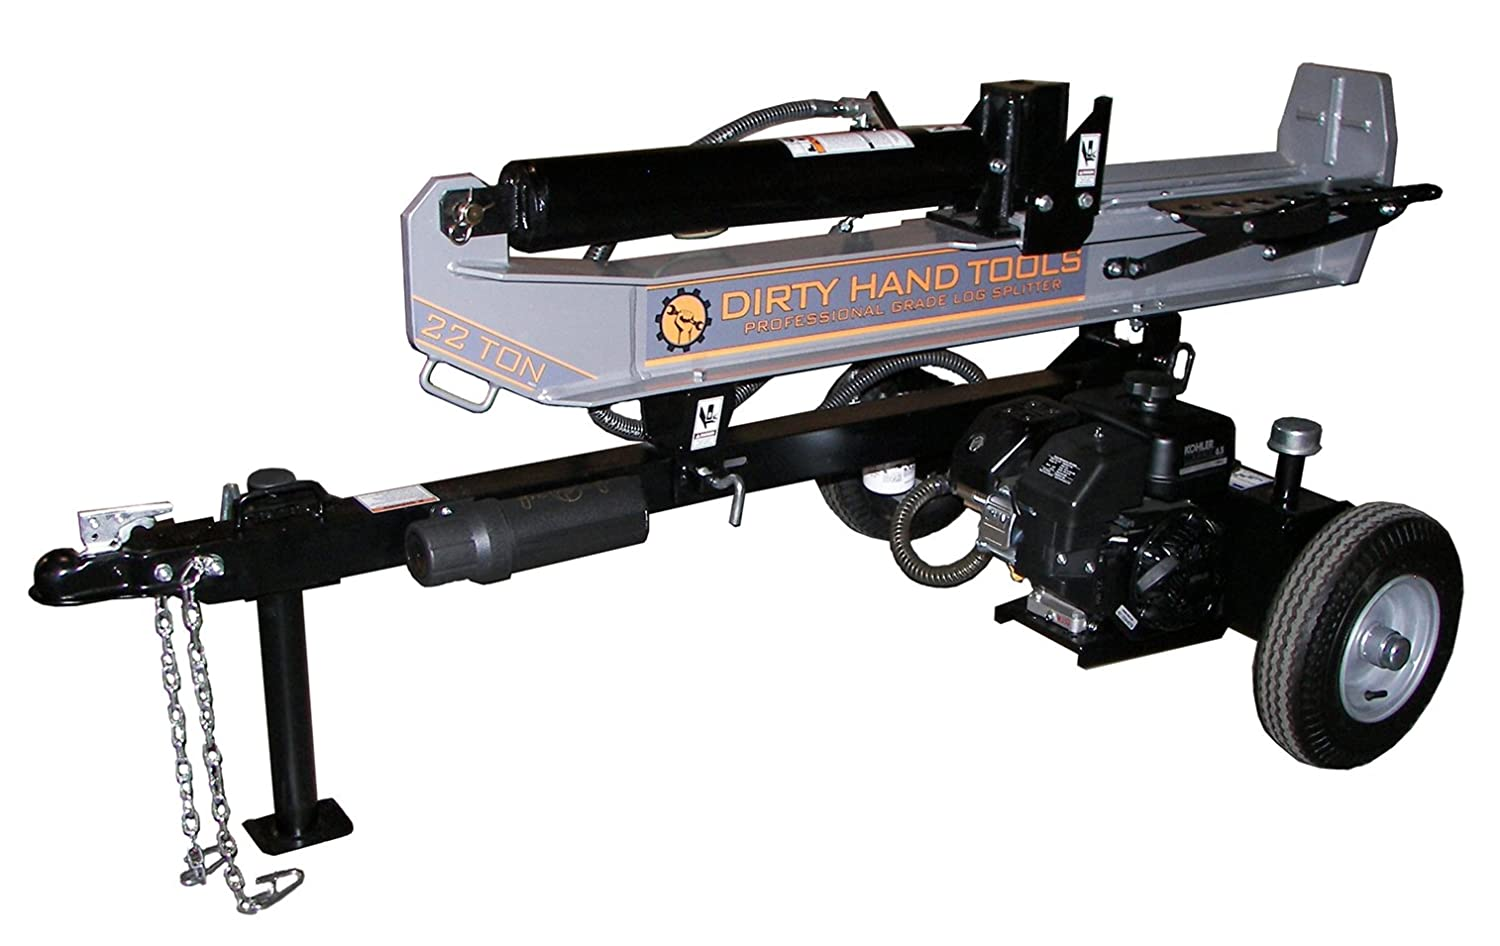 Dirty Hand Tools 100171, 22 Ton Horizontal/Vertical Gas Log Splitter, 196cc Kohler SH265 Engine